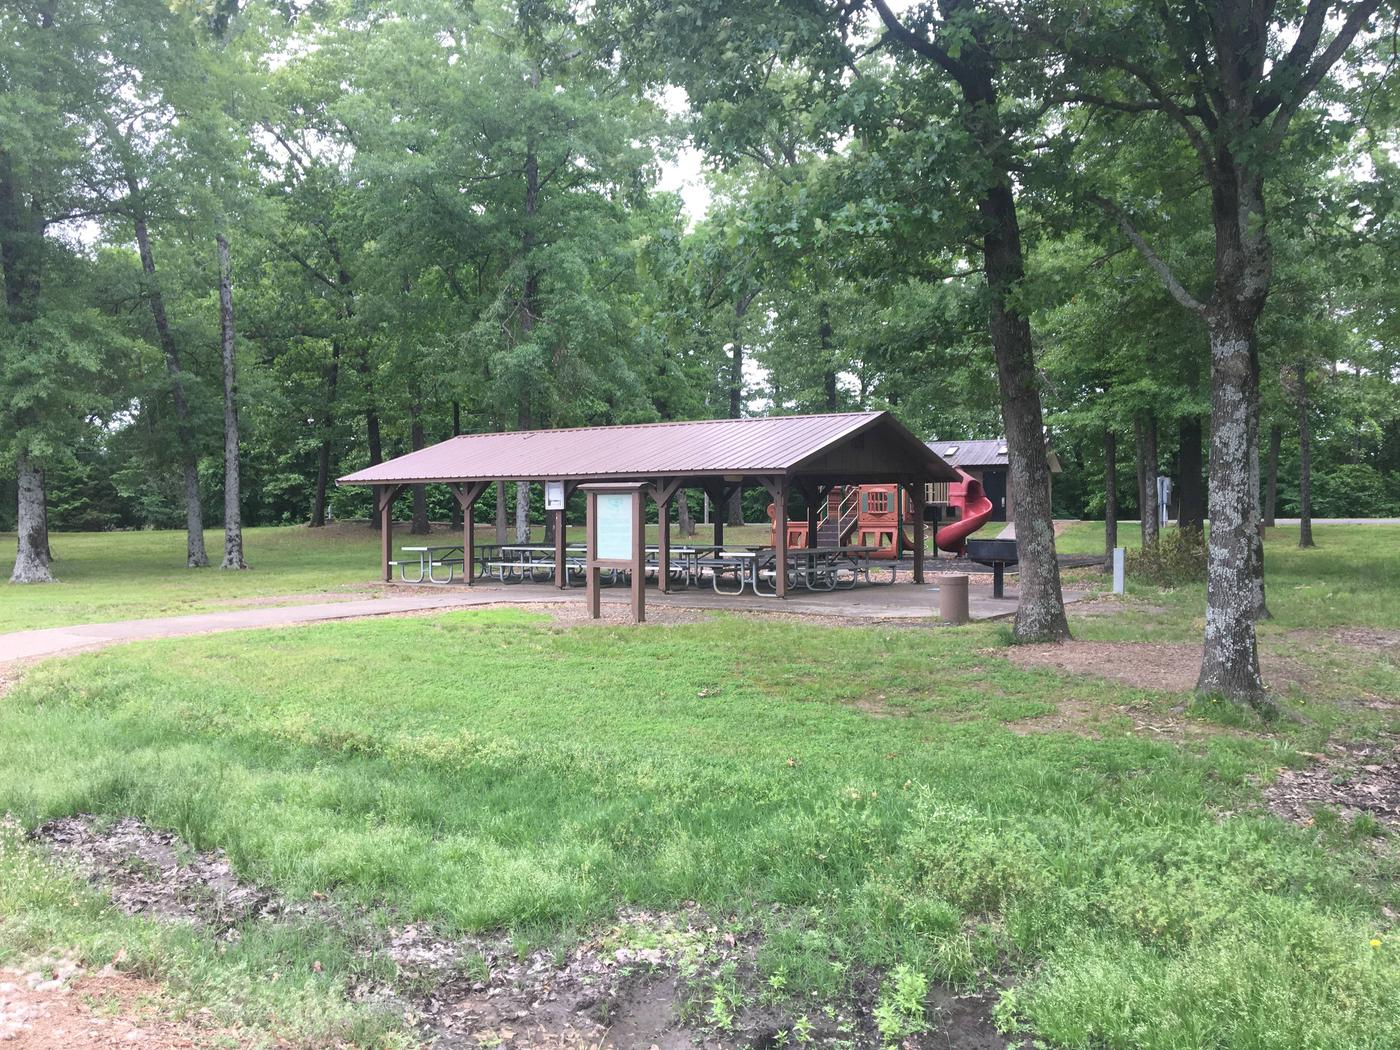 Group shelter, and playgrounds too